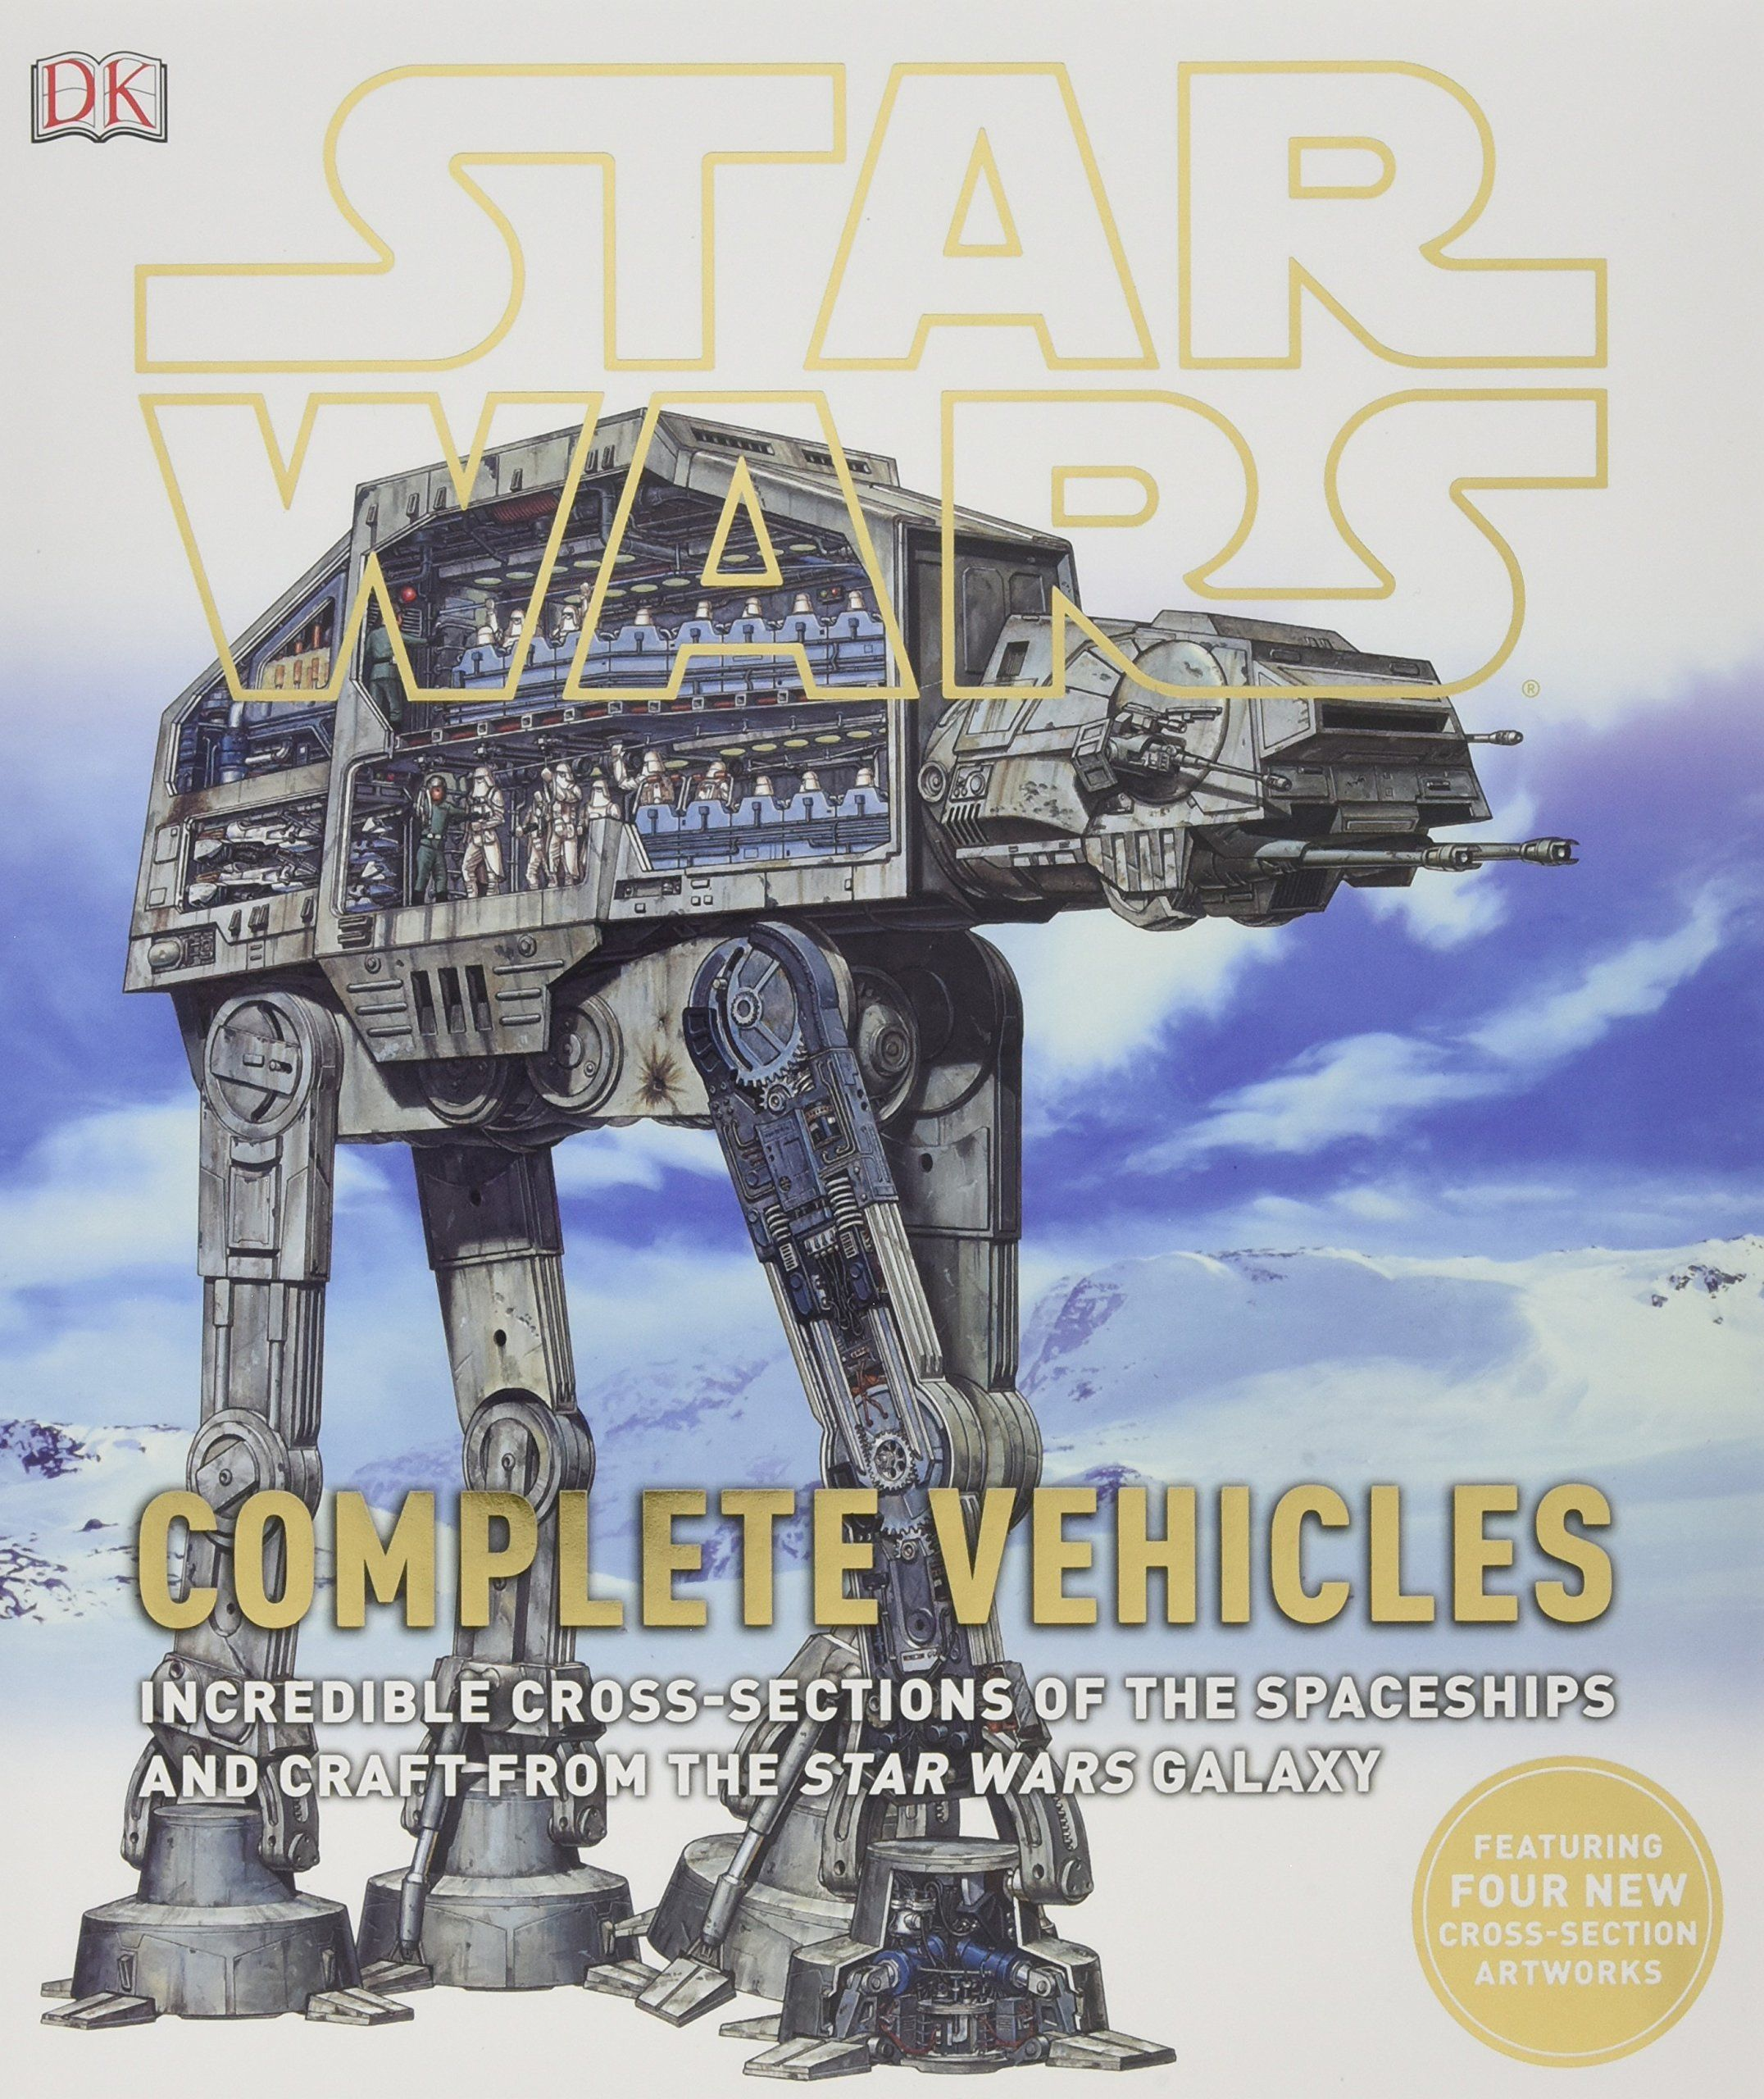 Pin by Mythic Sci Fi & Fantasy on STAR WARS BOOKS - AMAZON ...